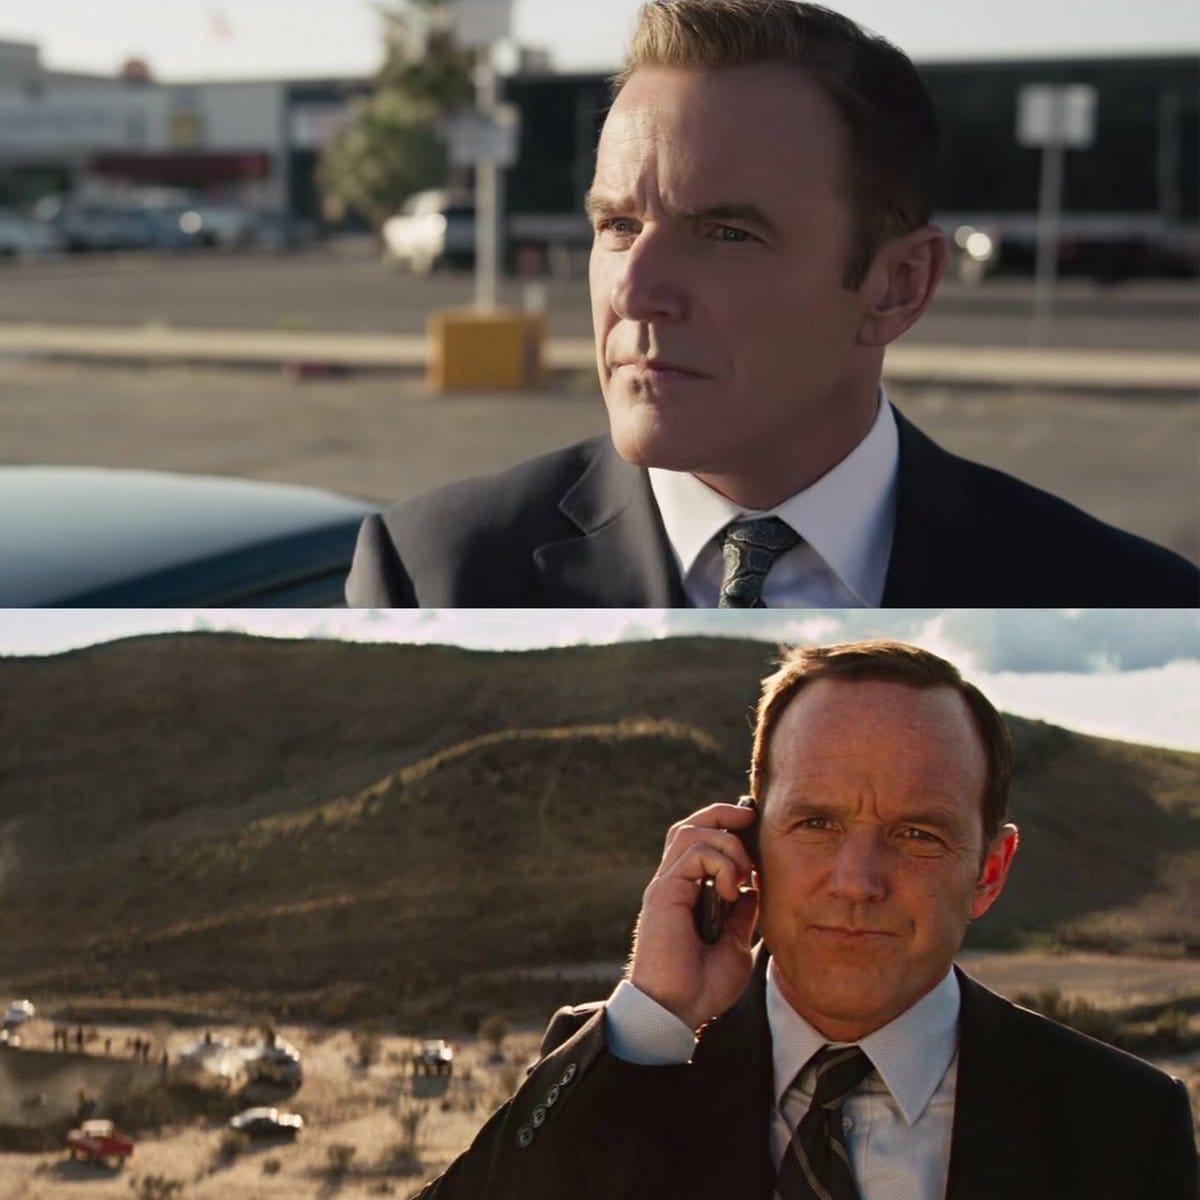 marvel-cinematic-unvierse-10-year-challenge-phil-coulson-1154300